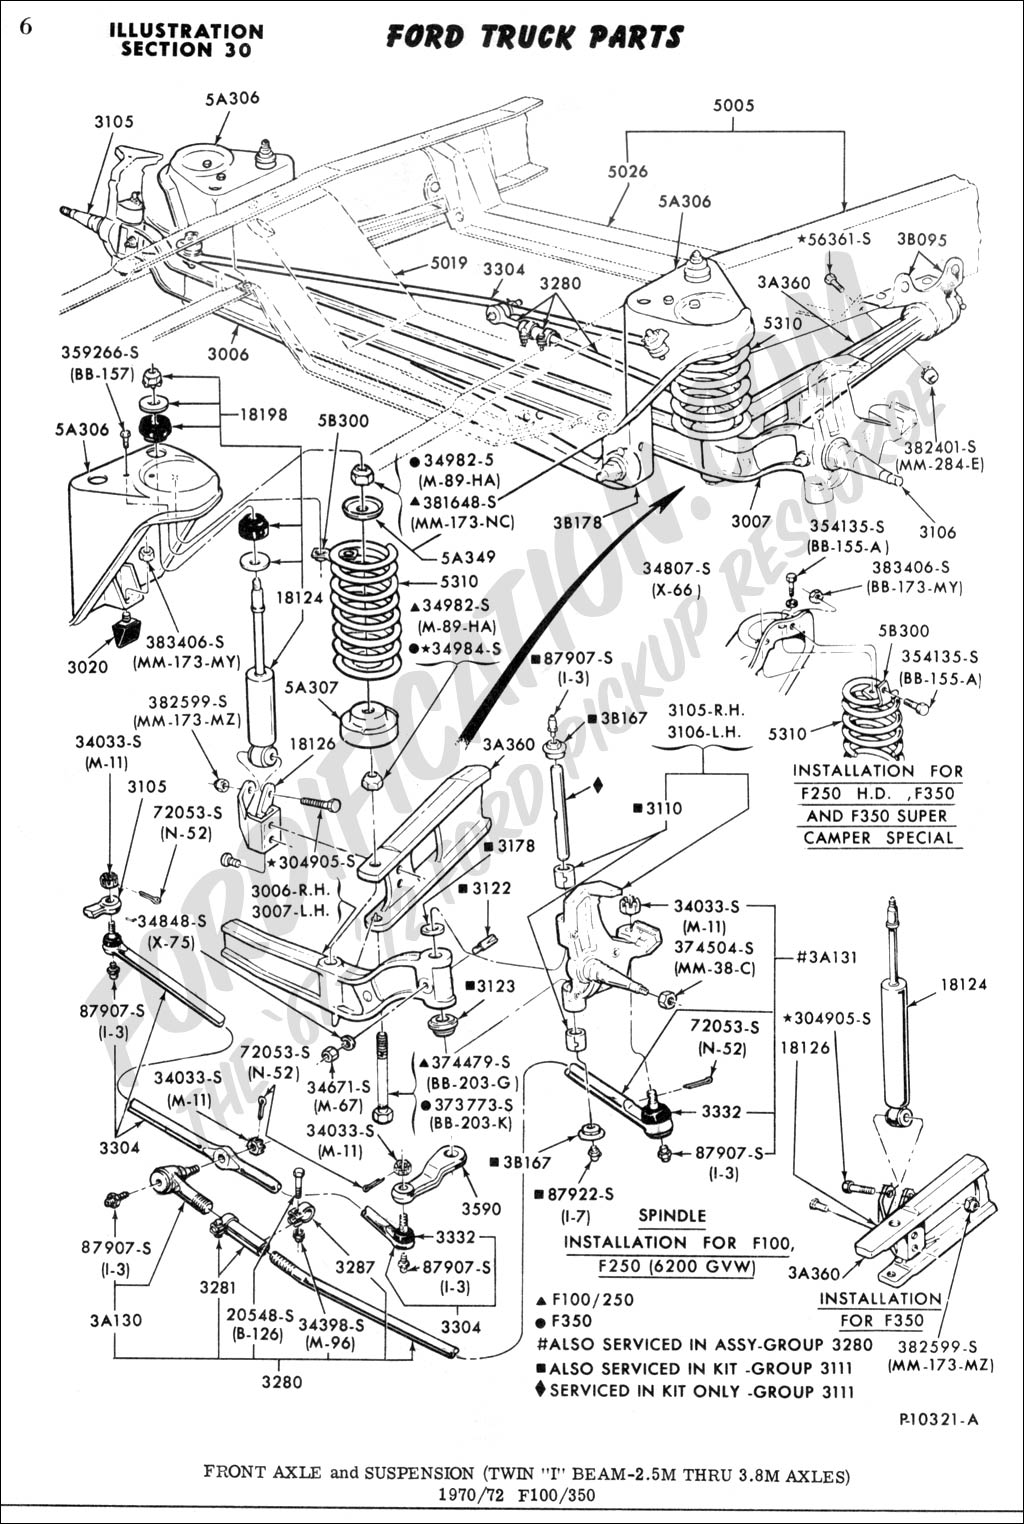 Ford Focus Rear Suspension Diagram 02 Ford F 250 4x4 Front